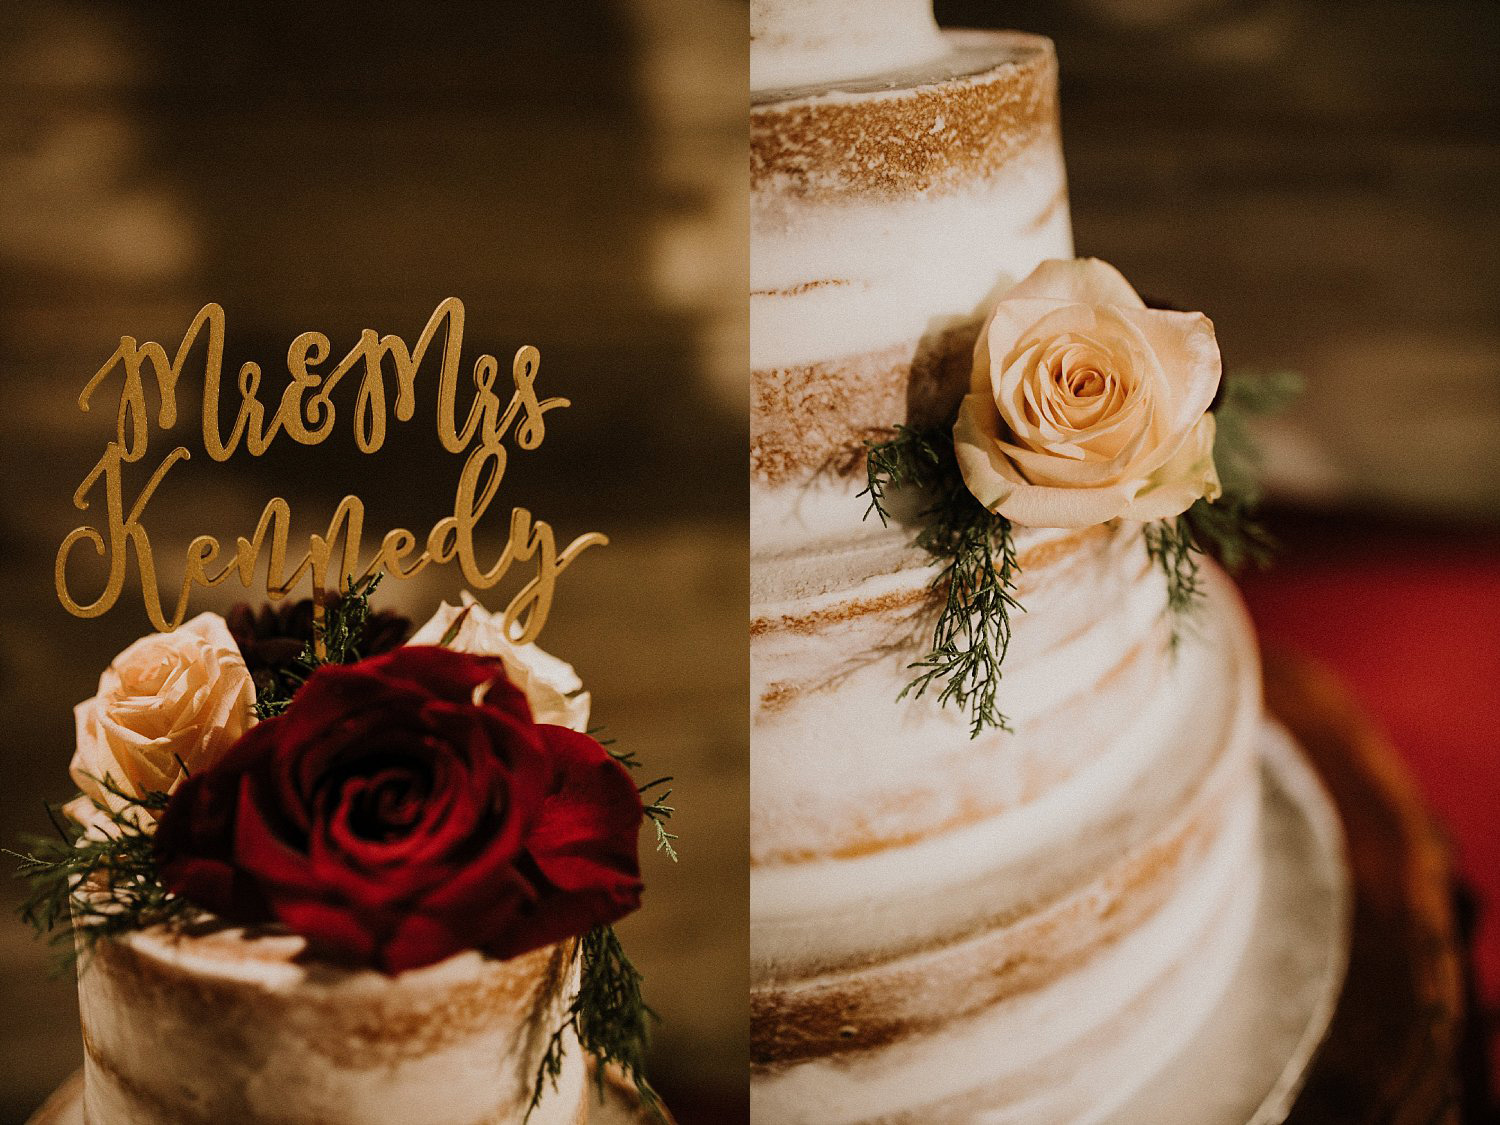 Hollow Hill Farm Event Center Wedding naked cake with laser cut cake topper in old town